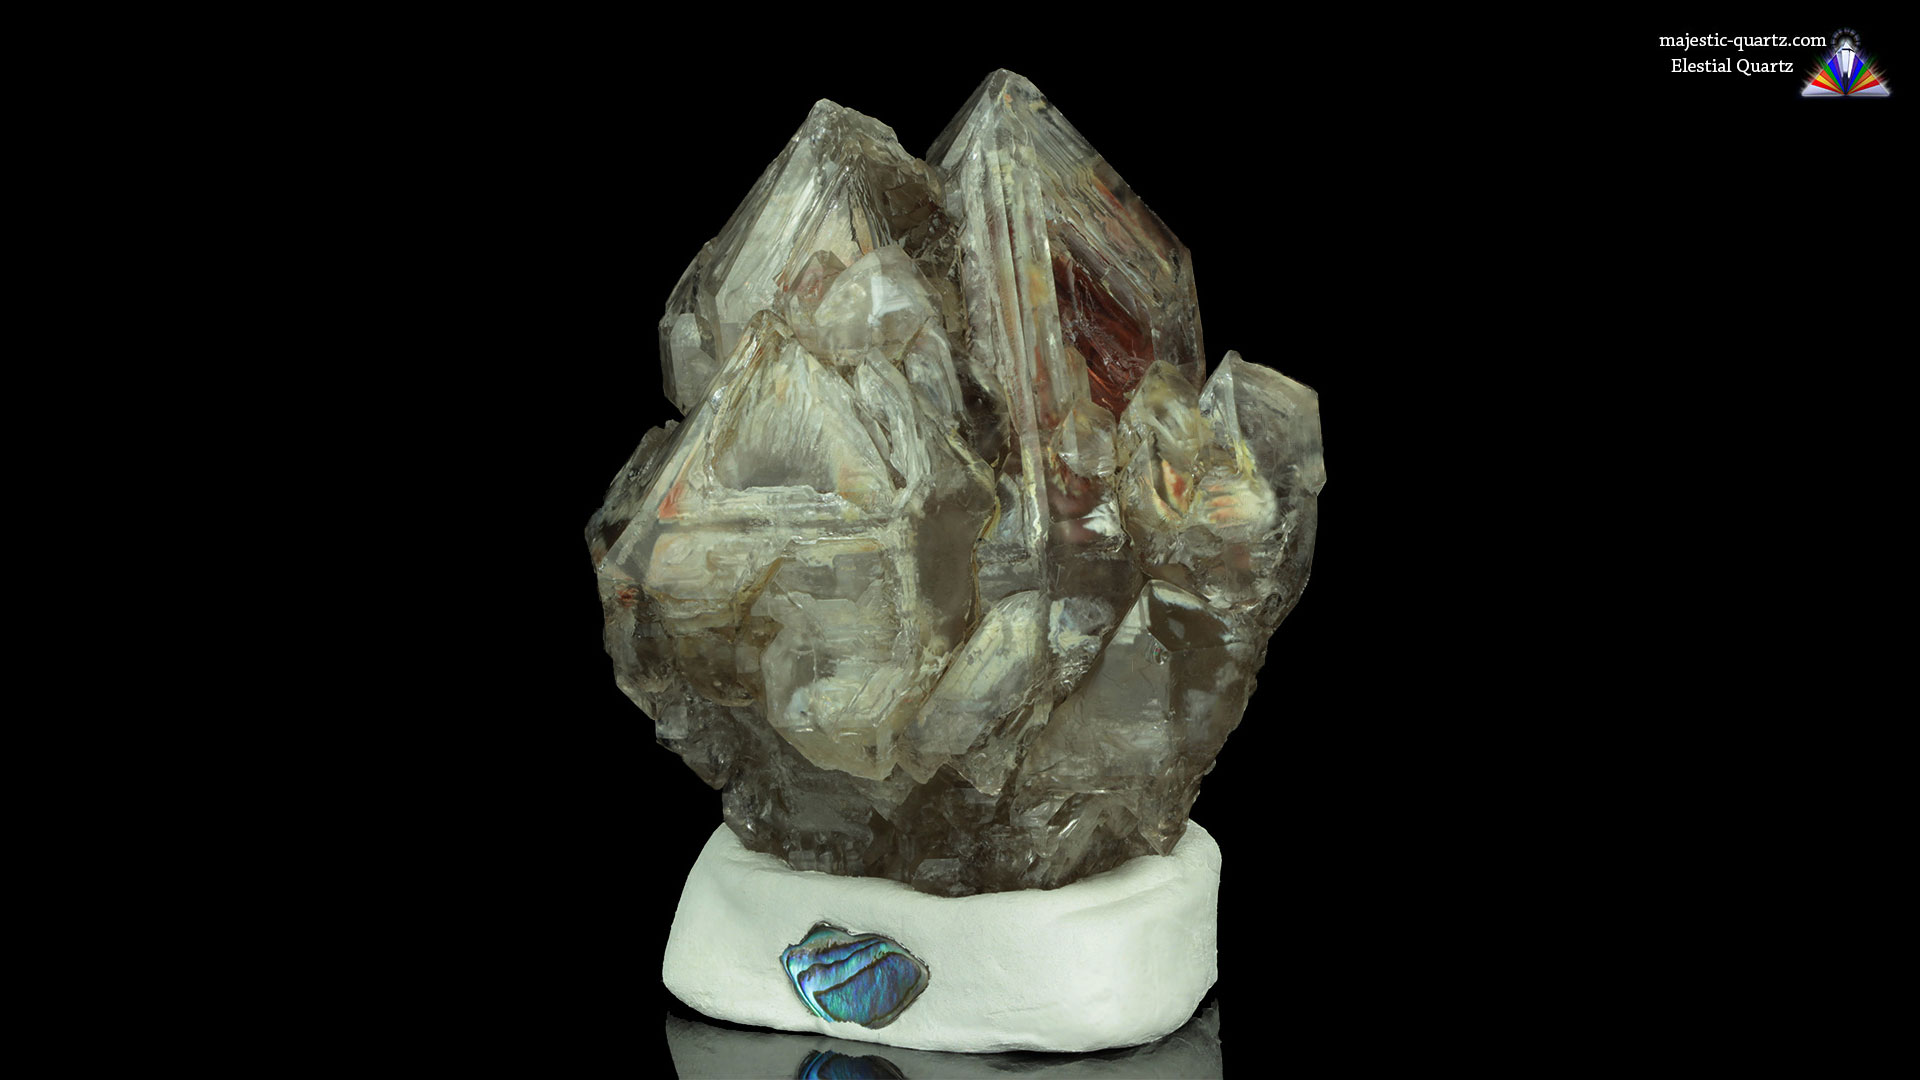 Clay Included Elestial Quartz Crystal - Photograph by Anthony Bradford